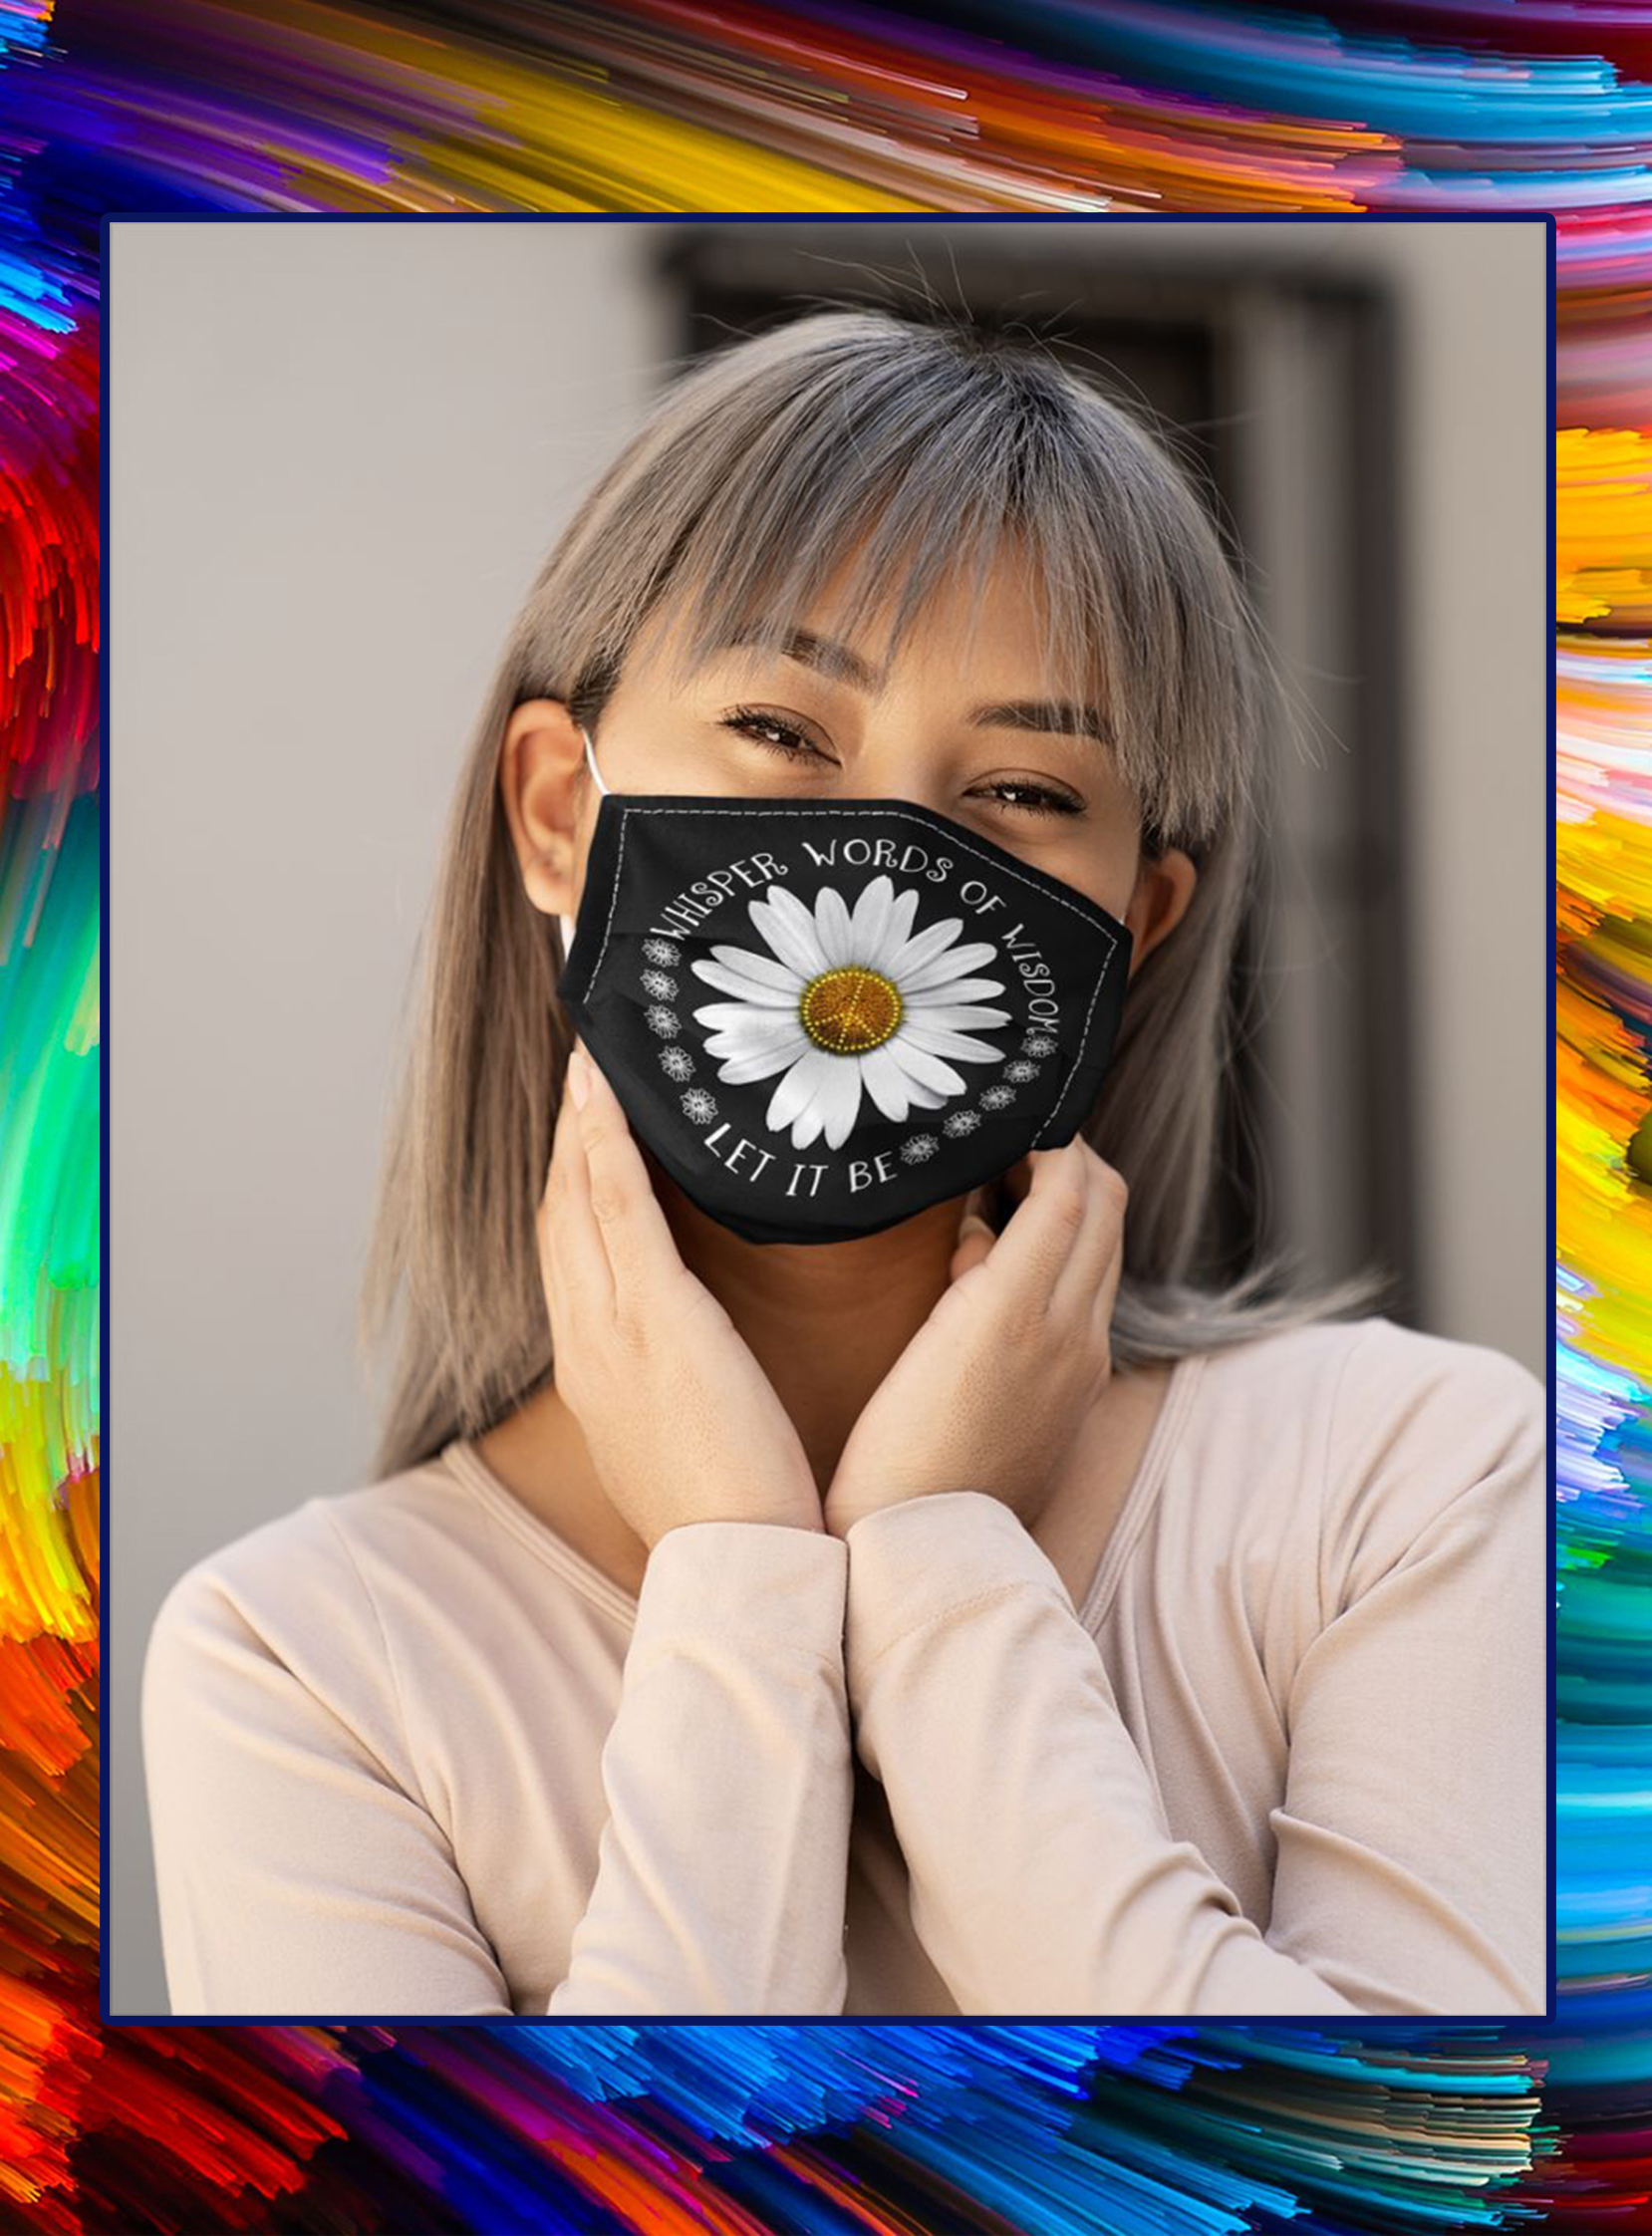 Hippie daisy whisper words of wisdom let it be face mask- pic 1